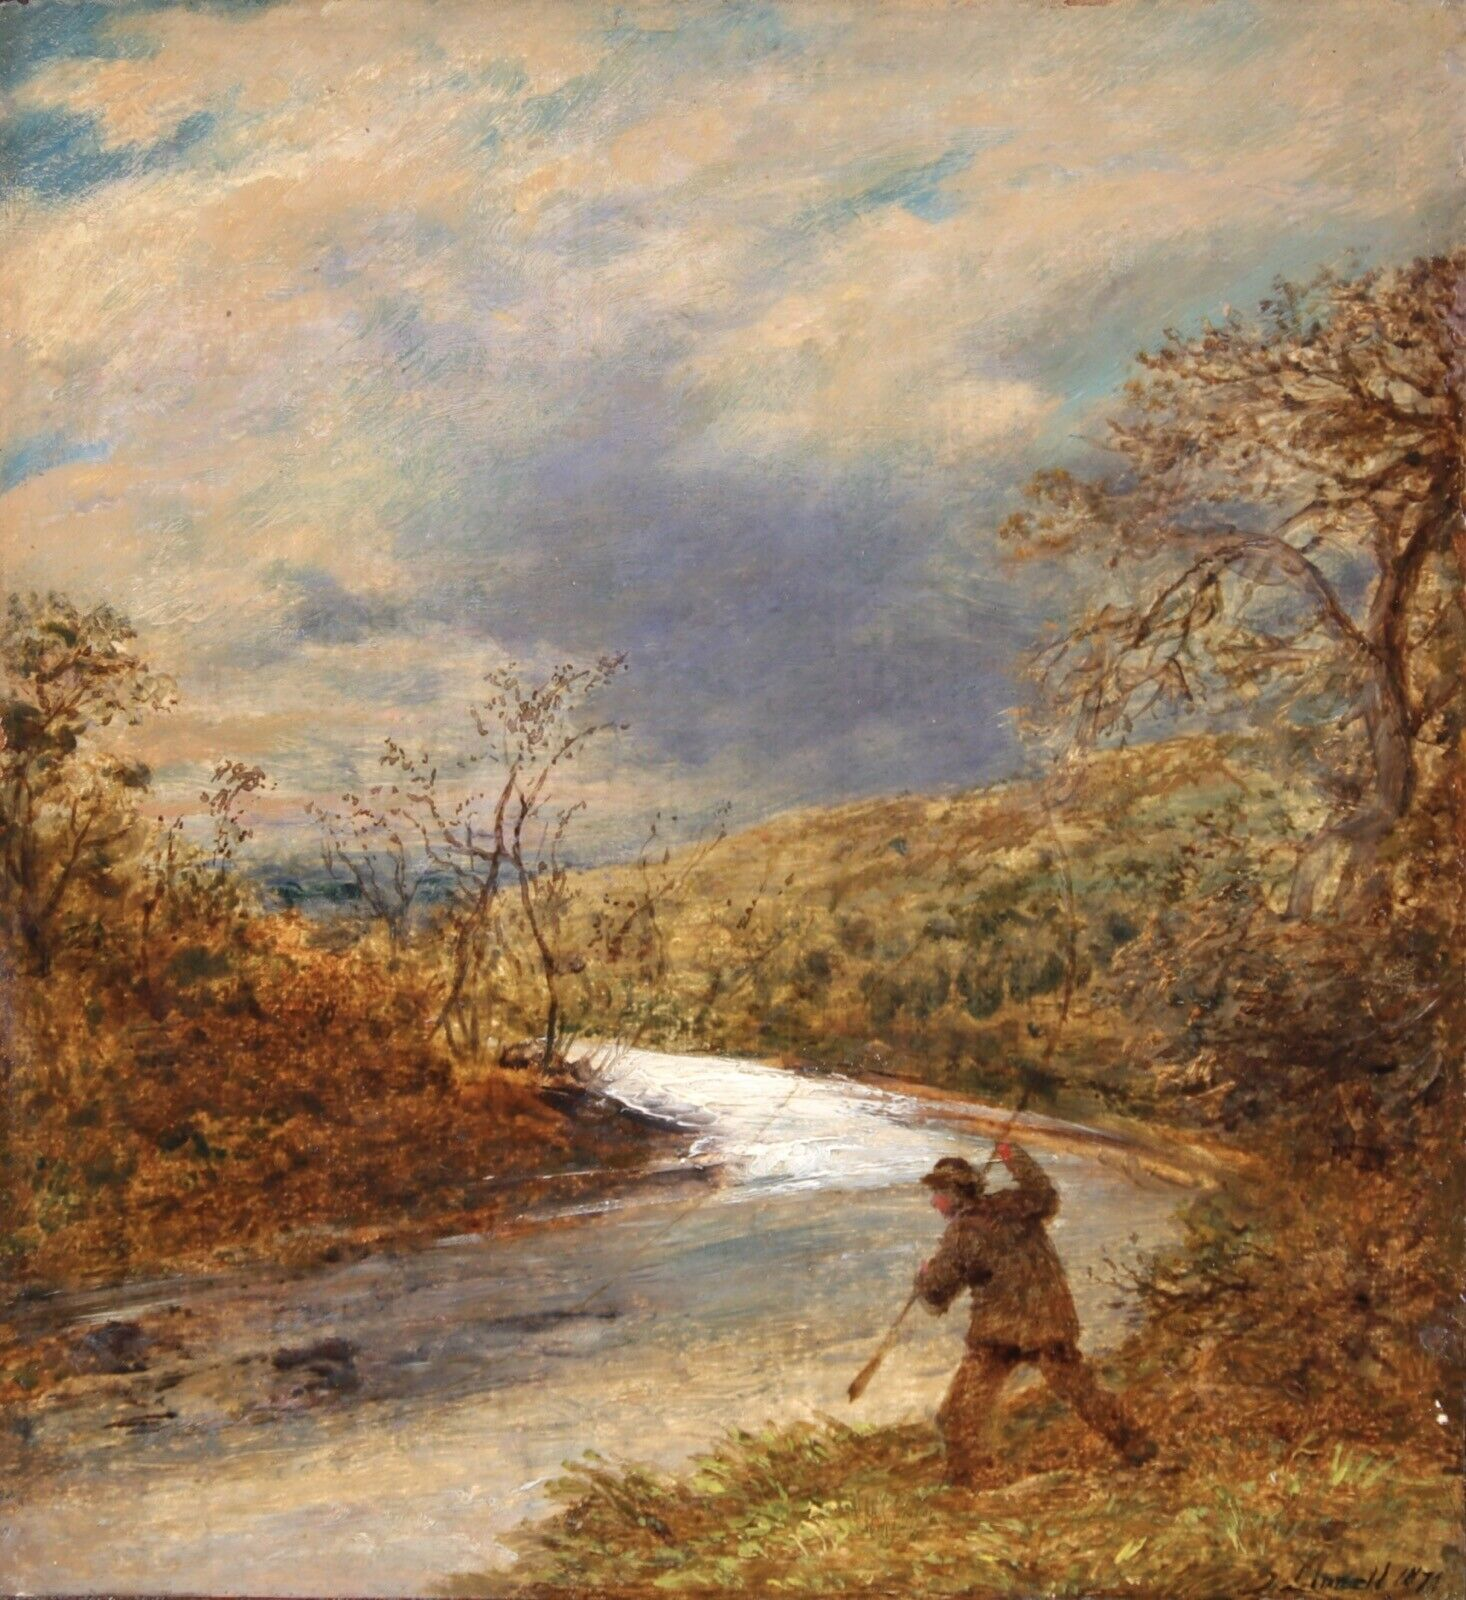 John Linnell (British 1792-1882): The Angler, oil on board signed and dated 1872, 34cm x 31cm